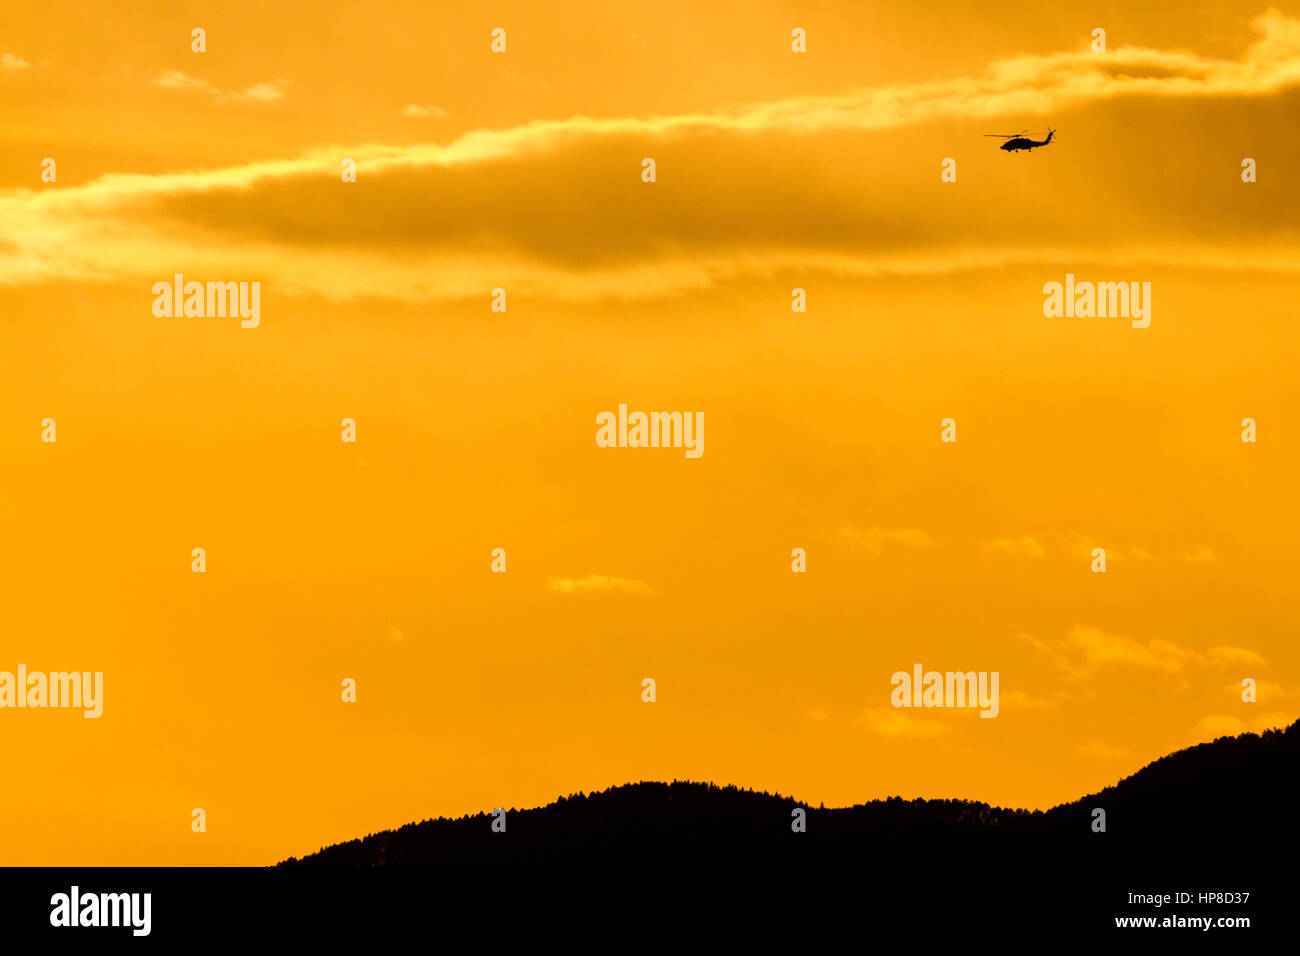 A Sikorsky UH-60 Black Hawk helicopter flying in sunset light over Kanagawa, Japan. Tuesday January 17th 2017 - Stock Image